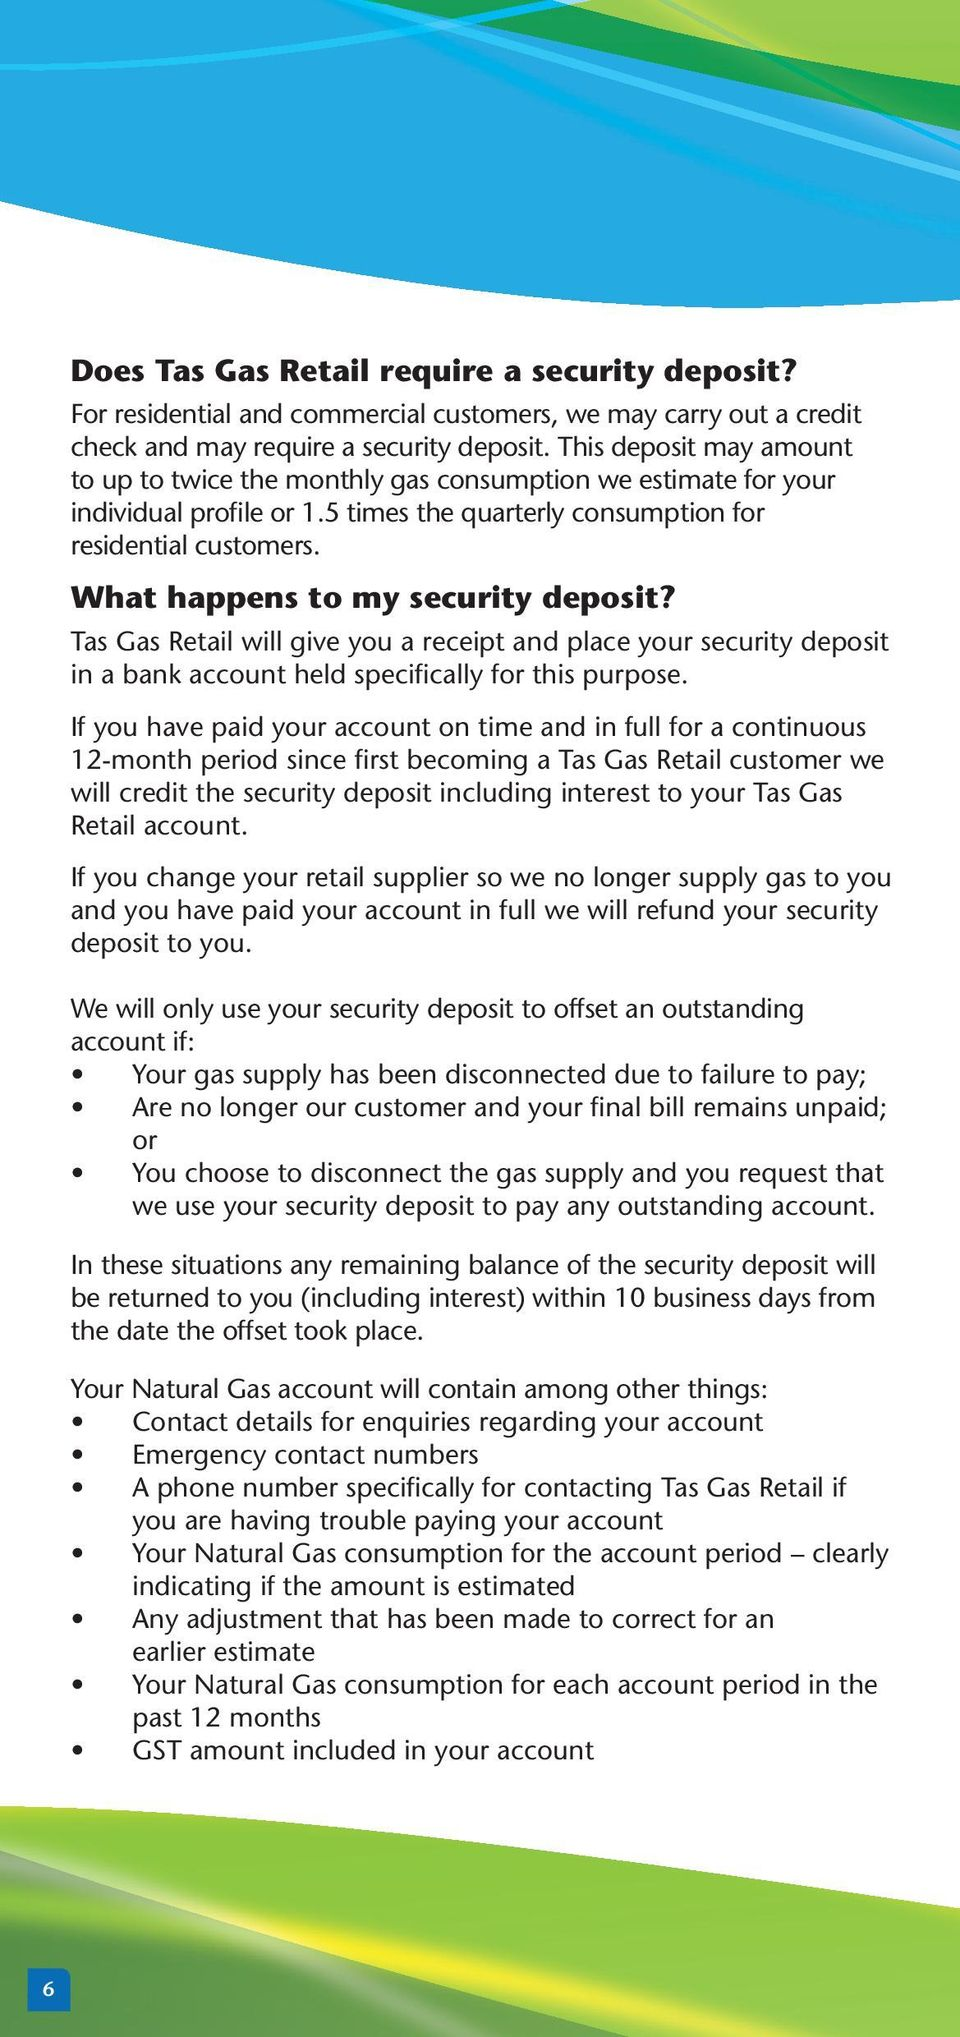 What happens to my security deposit? Tas Gas Retail will give you a receipt and place your security deposit in a bank account held specifically for this purpose.